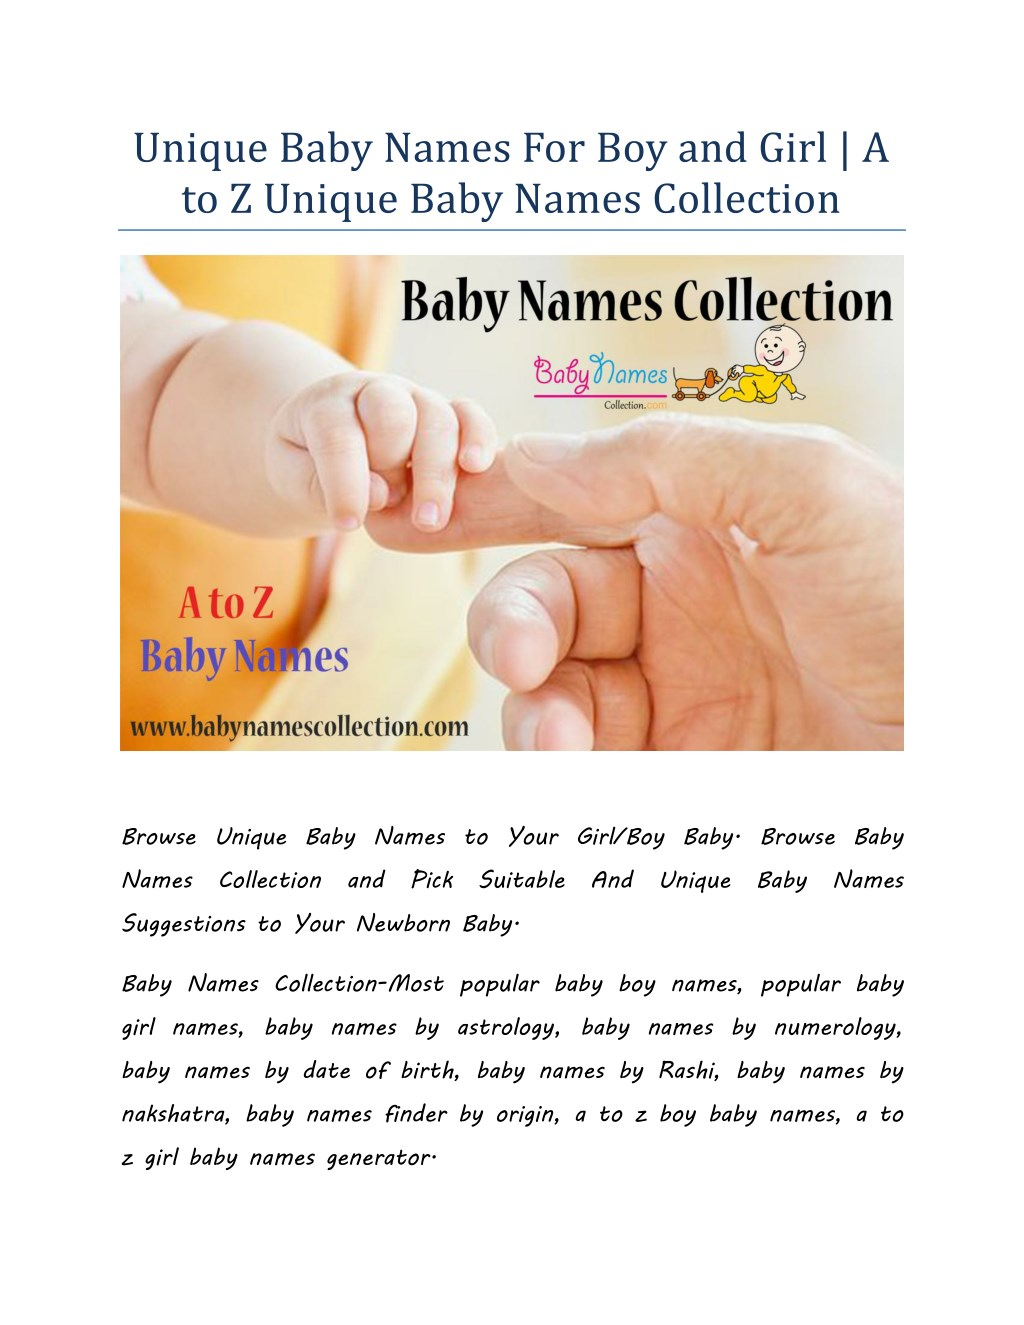 PPT - Unique Baby Names For Boy and Girl | A to Z Unique